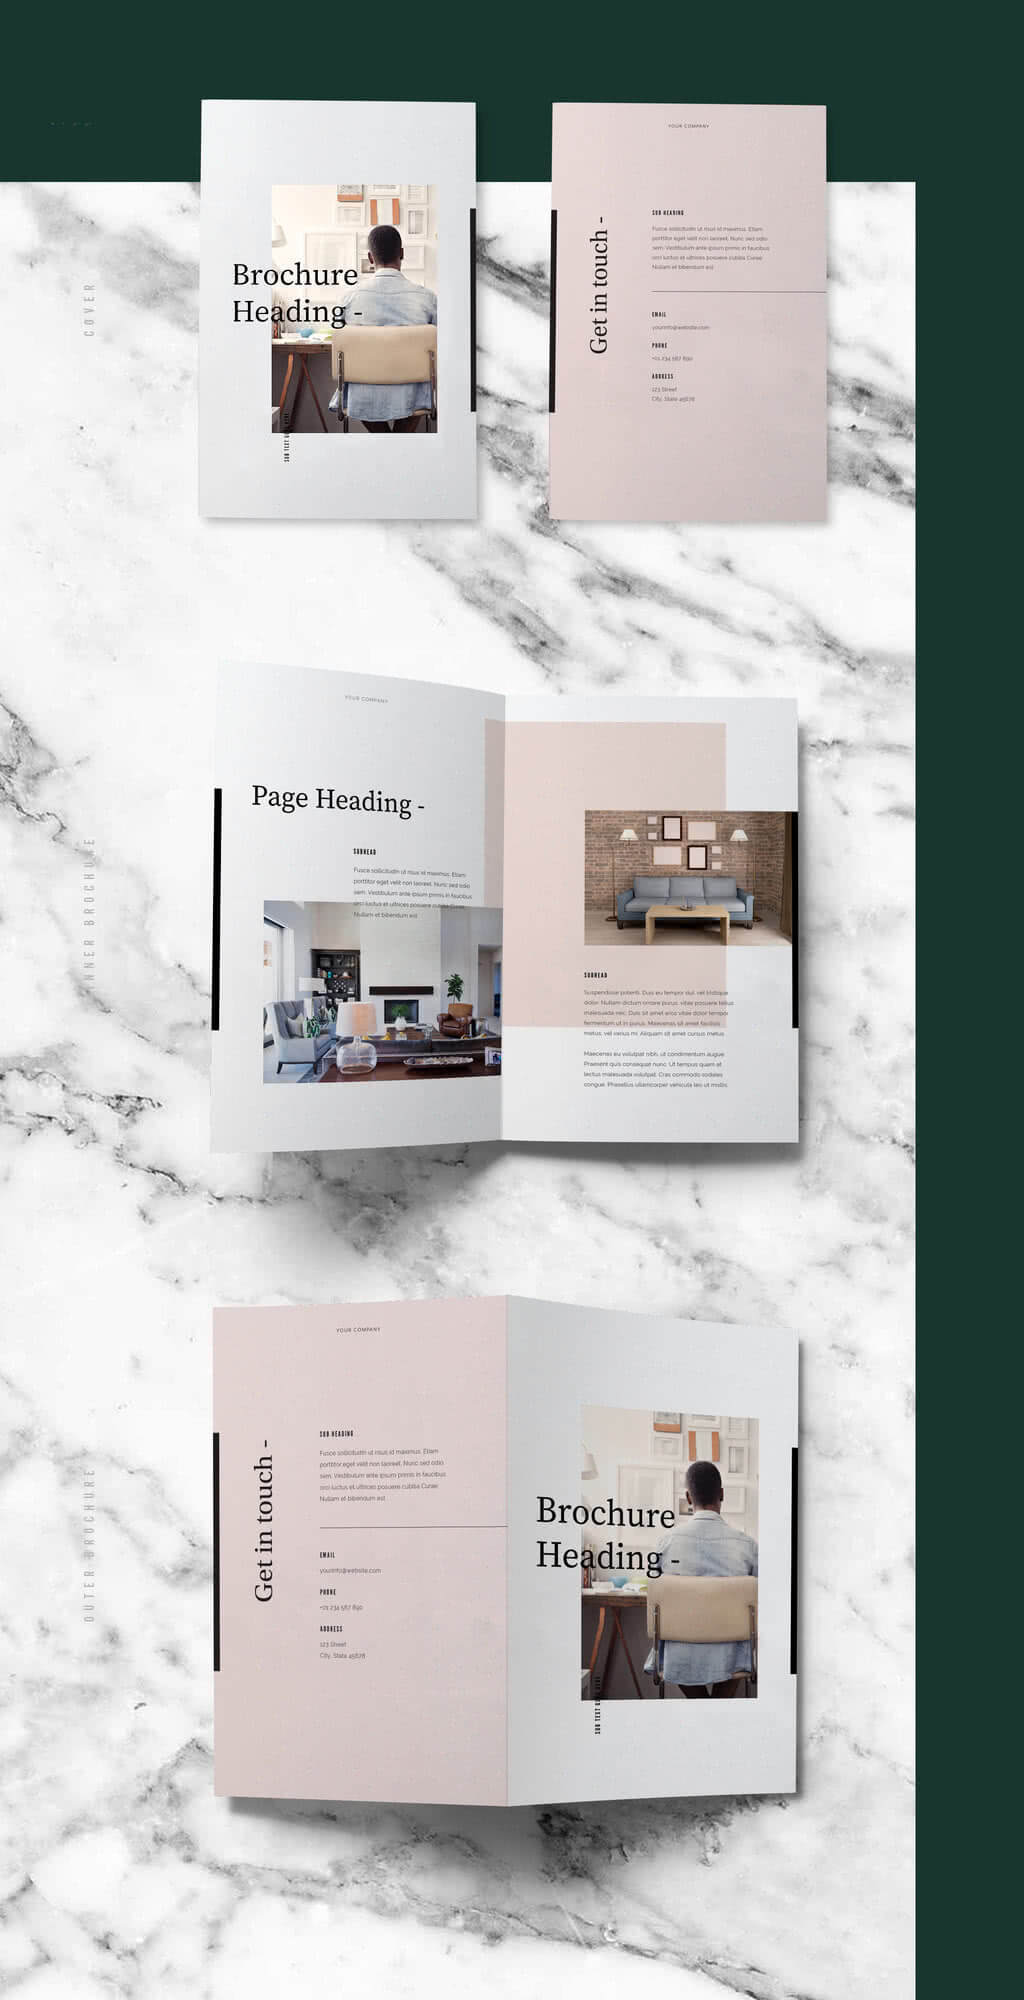 75 Fresh Indesign Templates And Where To Find More For Brochure Templates Free Download Indesign